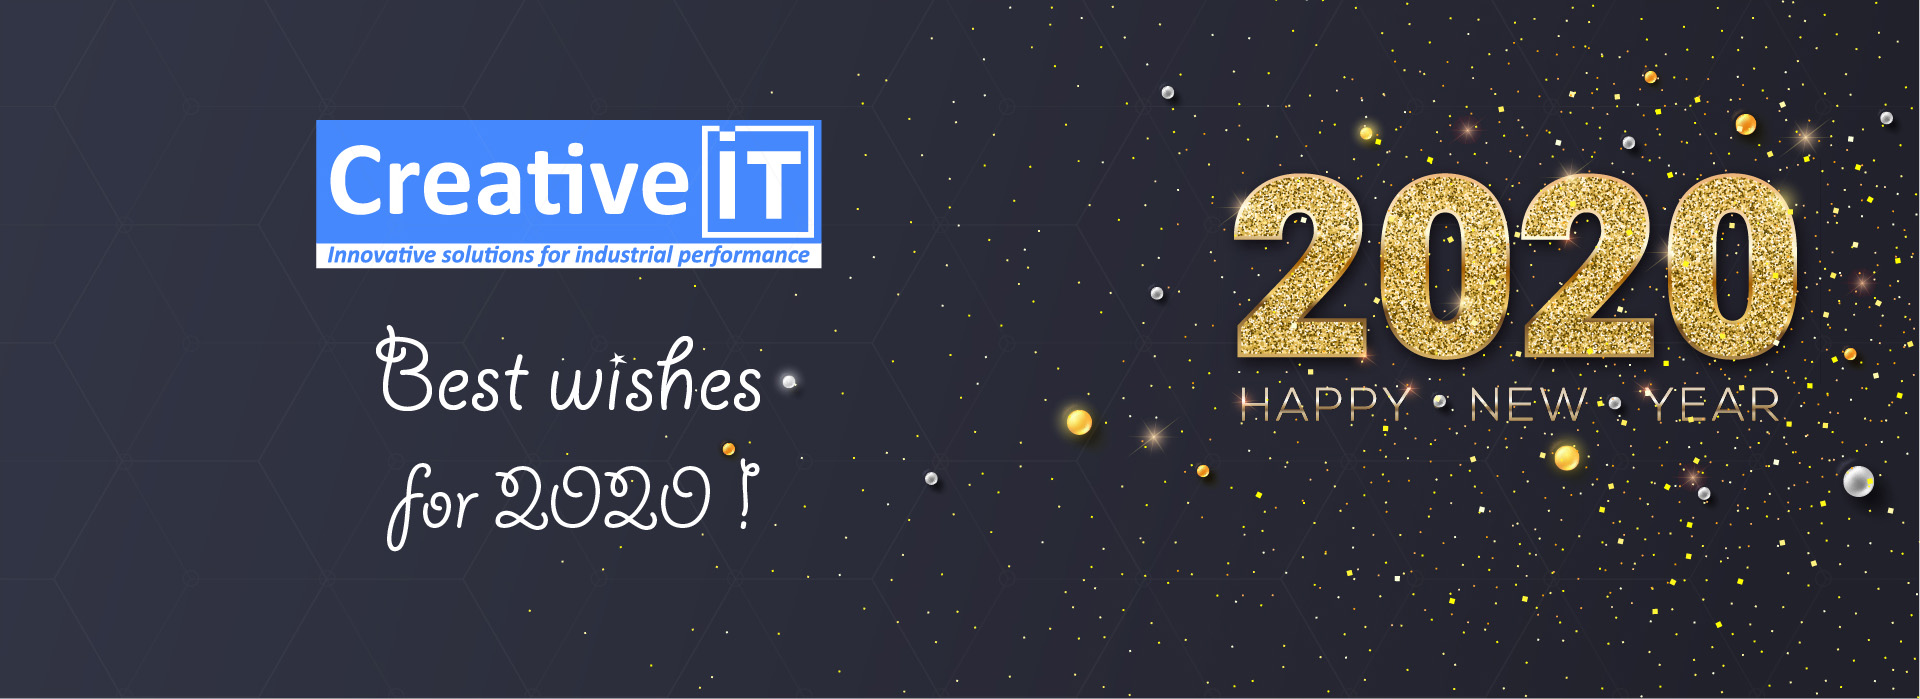 Creative IT – Best wishes for 2020 !